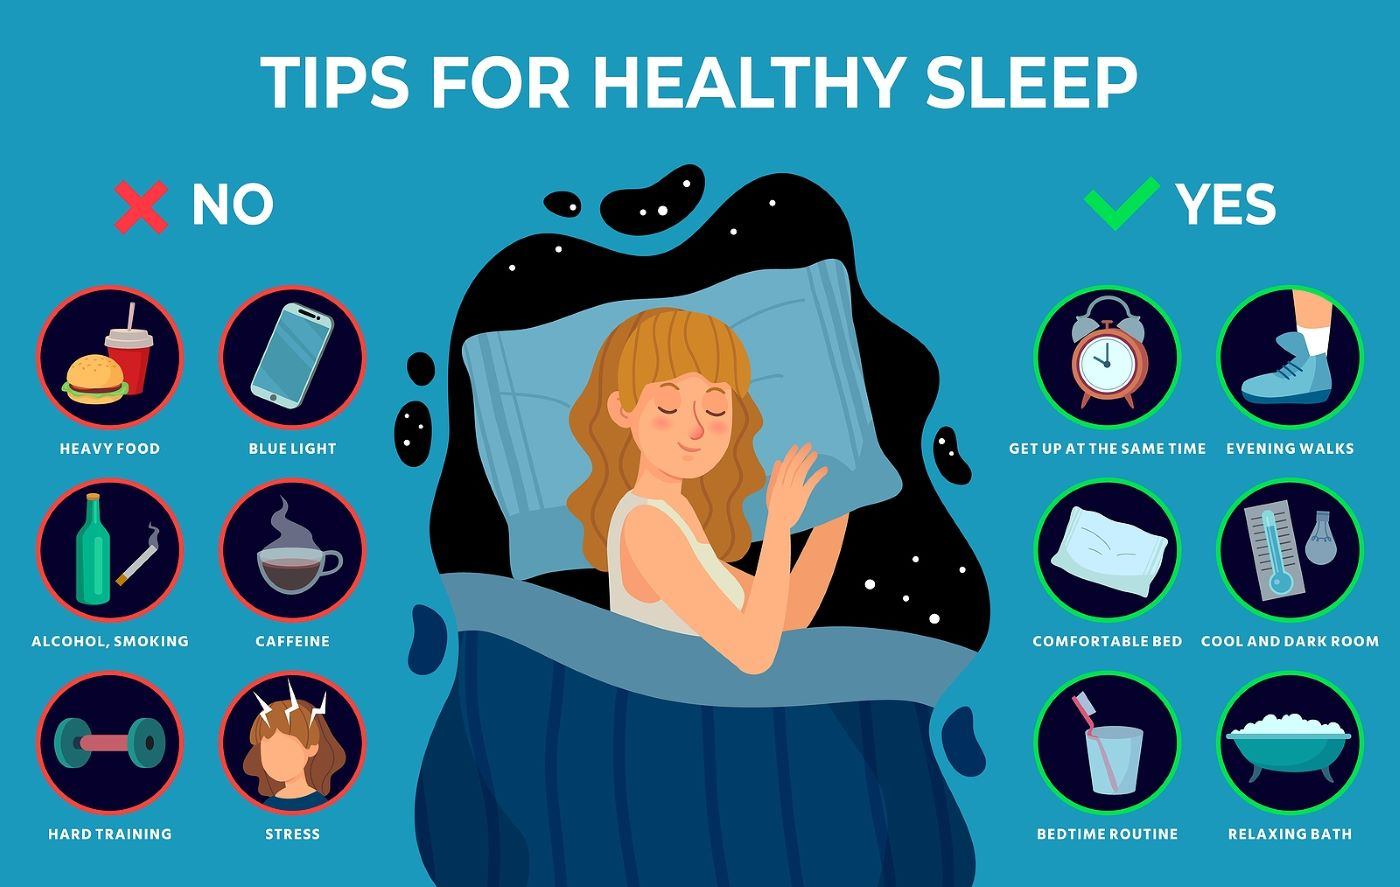 Self-Care: Good sleep as part of mental health recovery